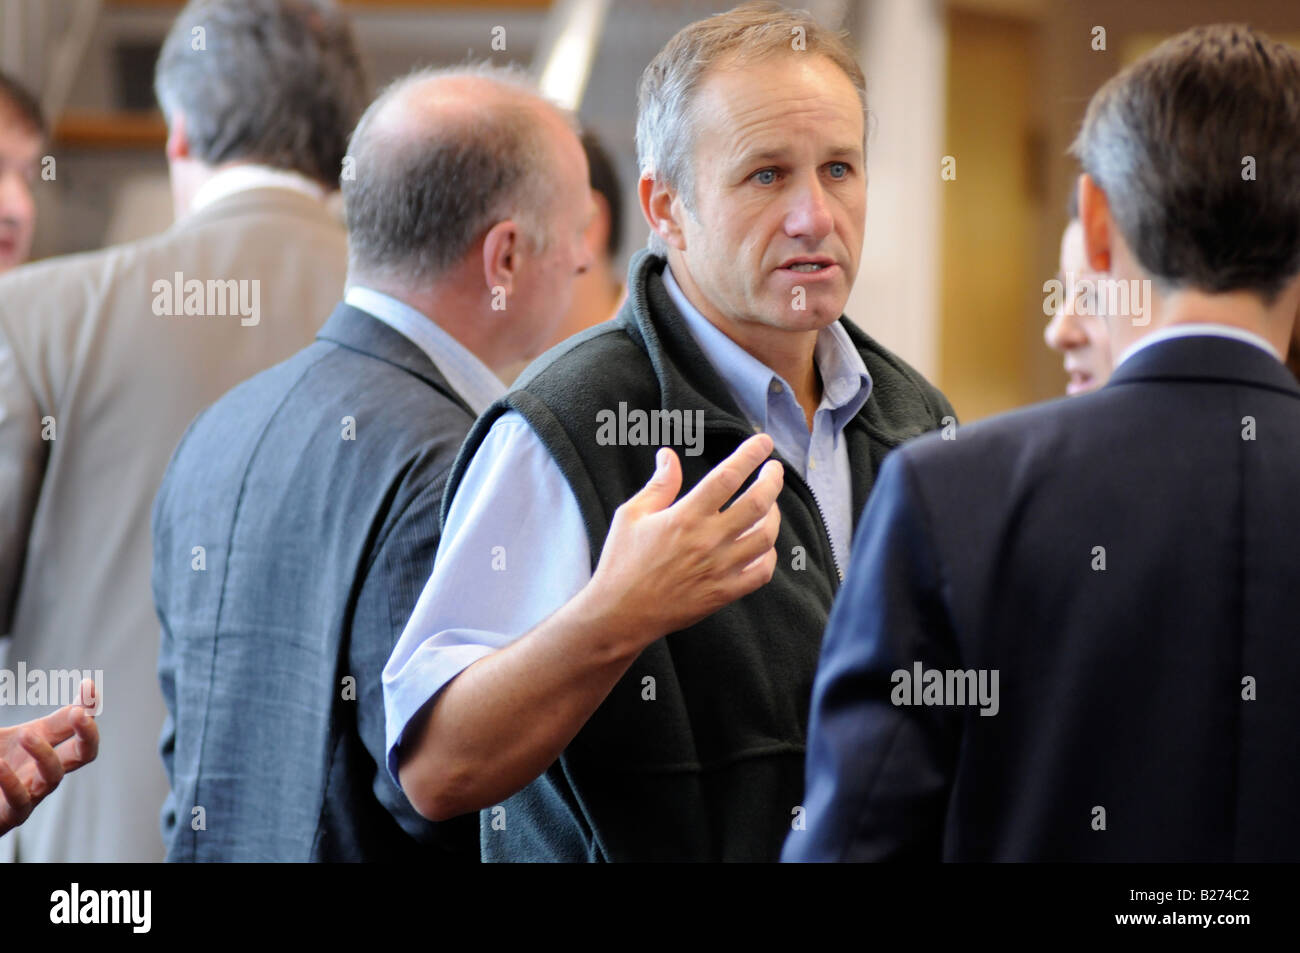 Royalty free photograph of a British business men in meeting talking and networking in corporate offices London - Stock Image